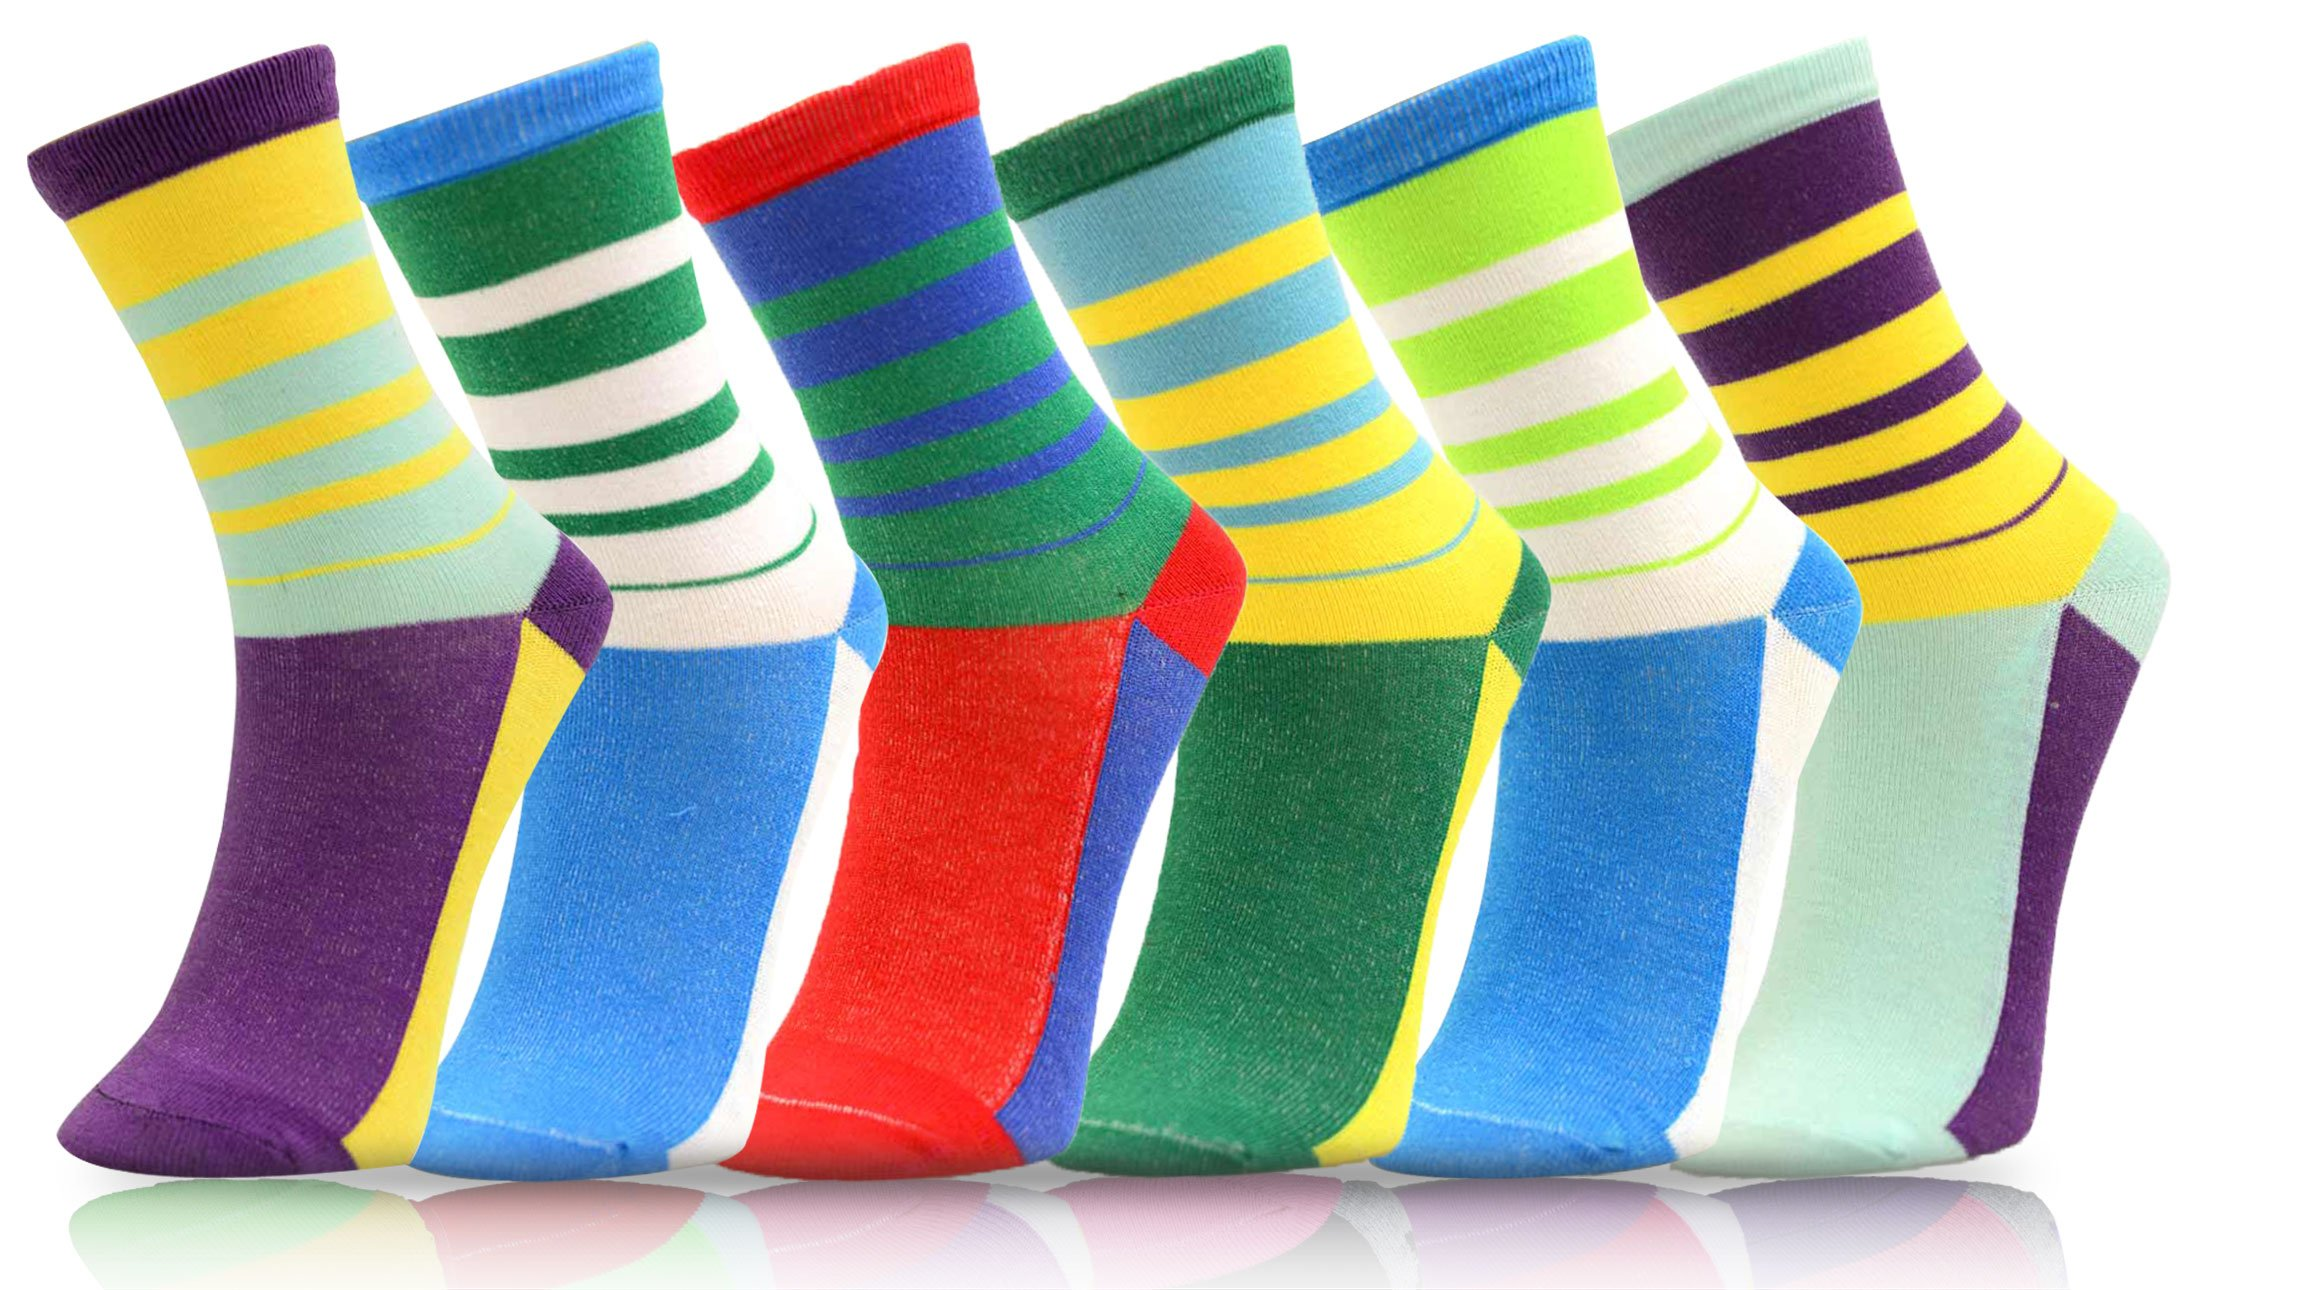 ICONOFLASH Women's Printed Crew Socks 6-Pair Bundle Pack, (Multi Stripes, Size 9-11)